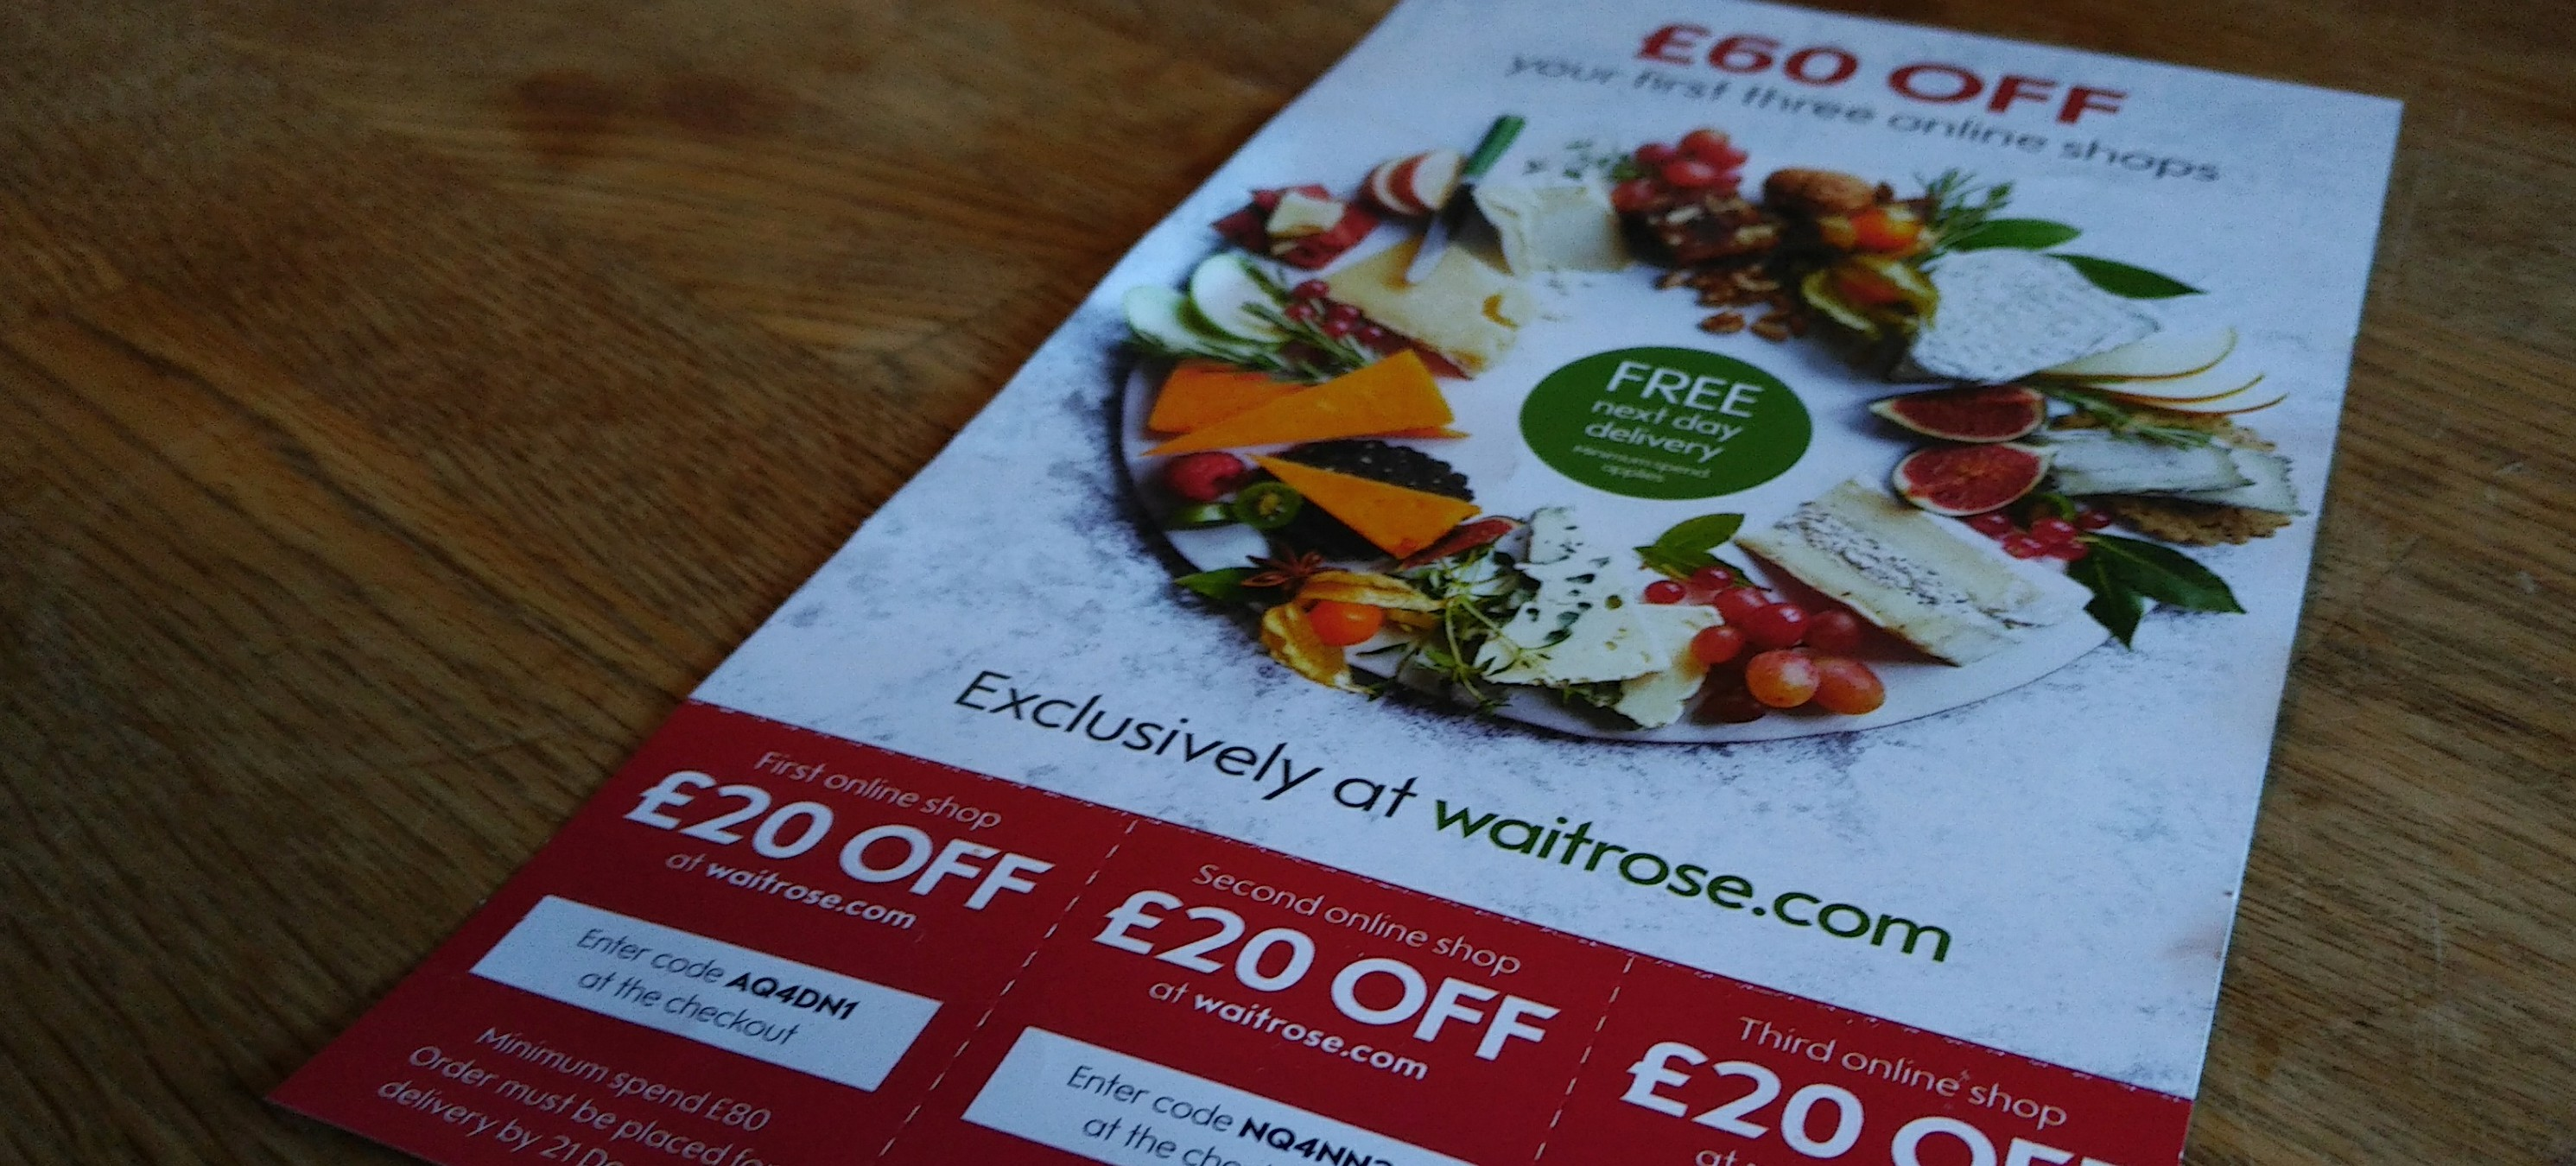 Waitrose Christmas offers